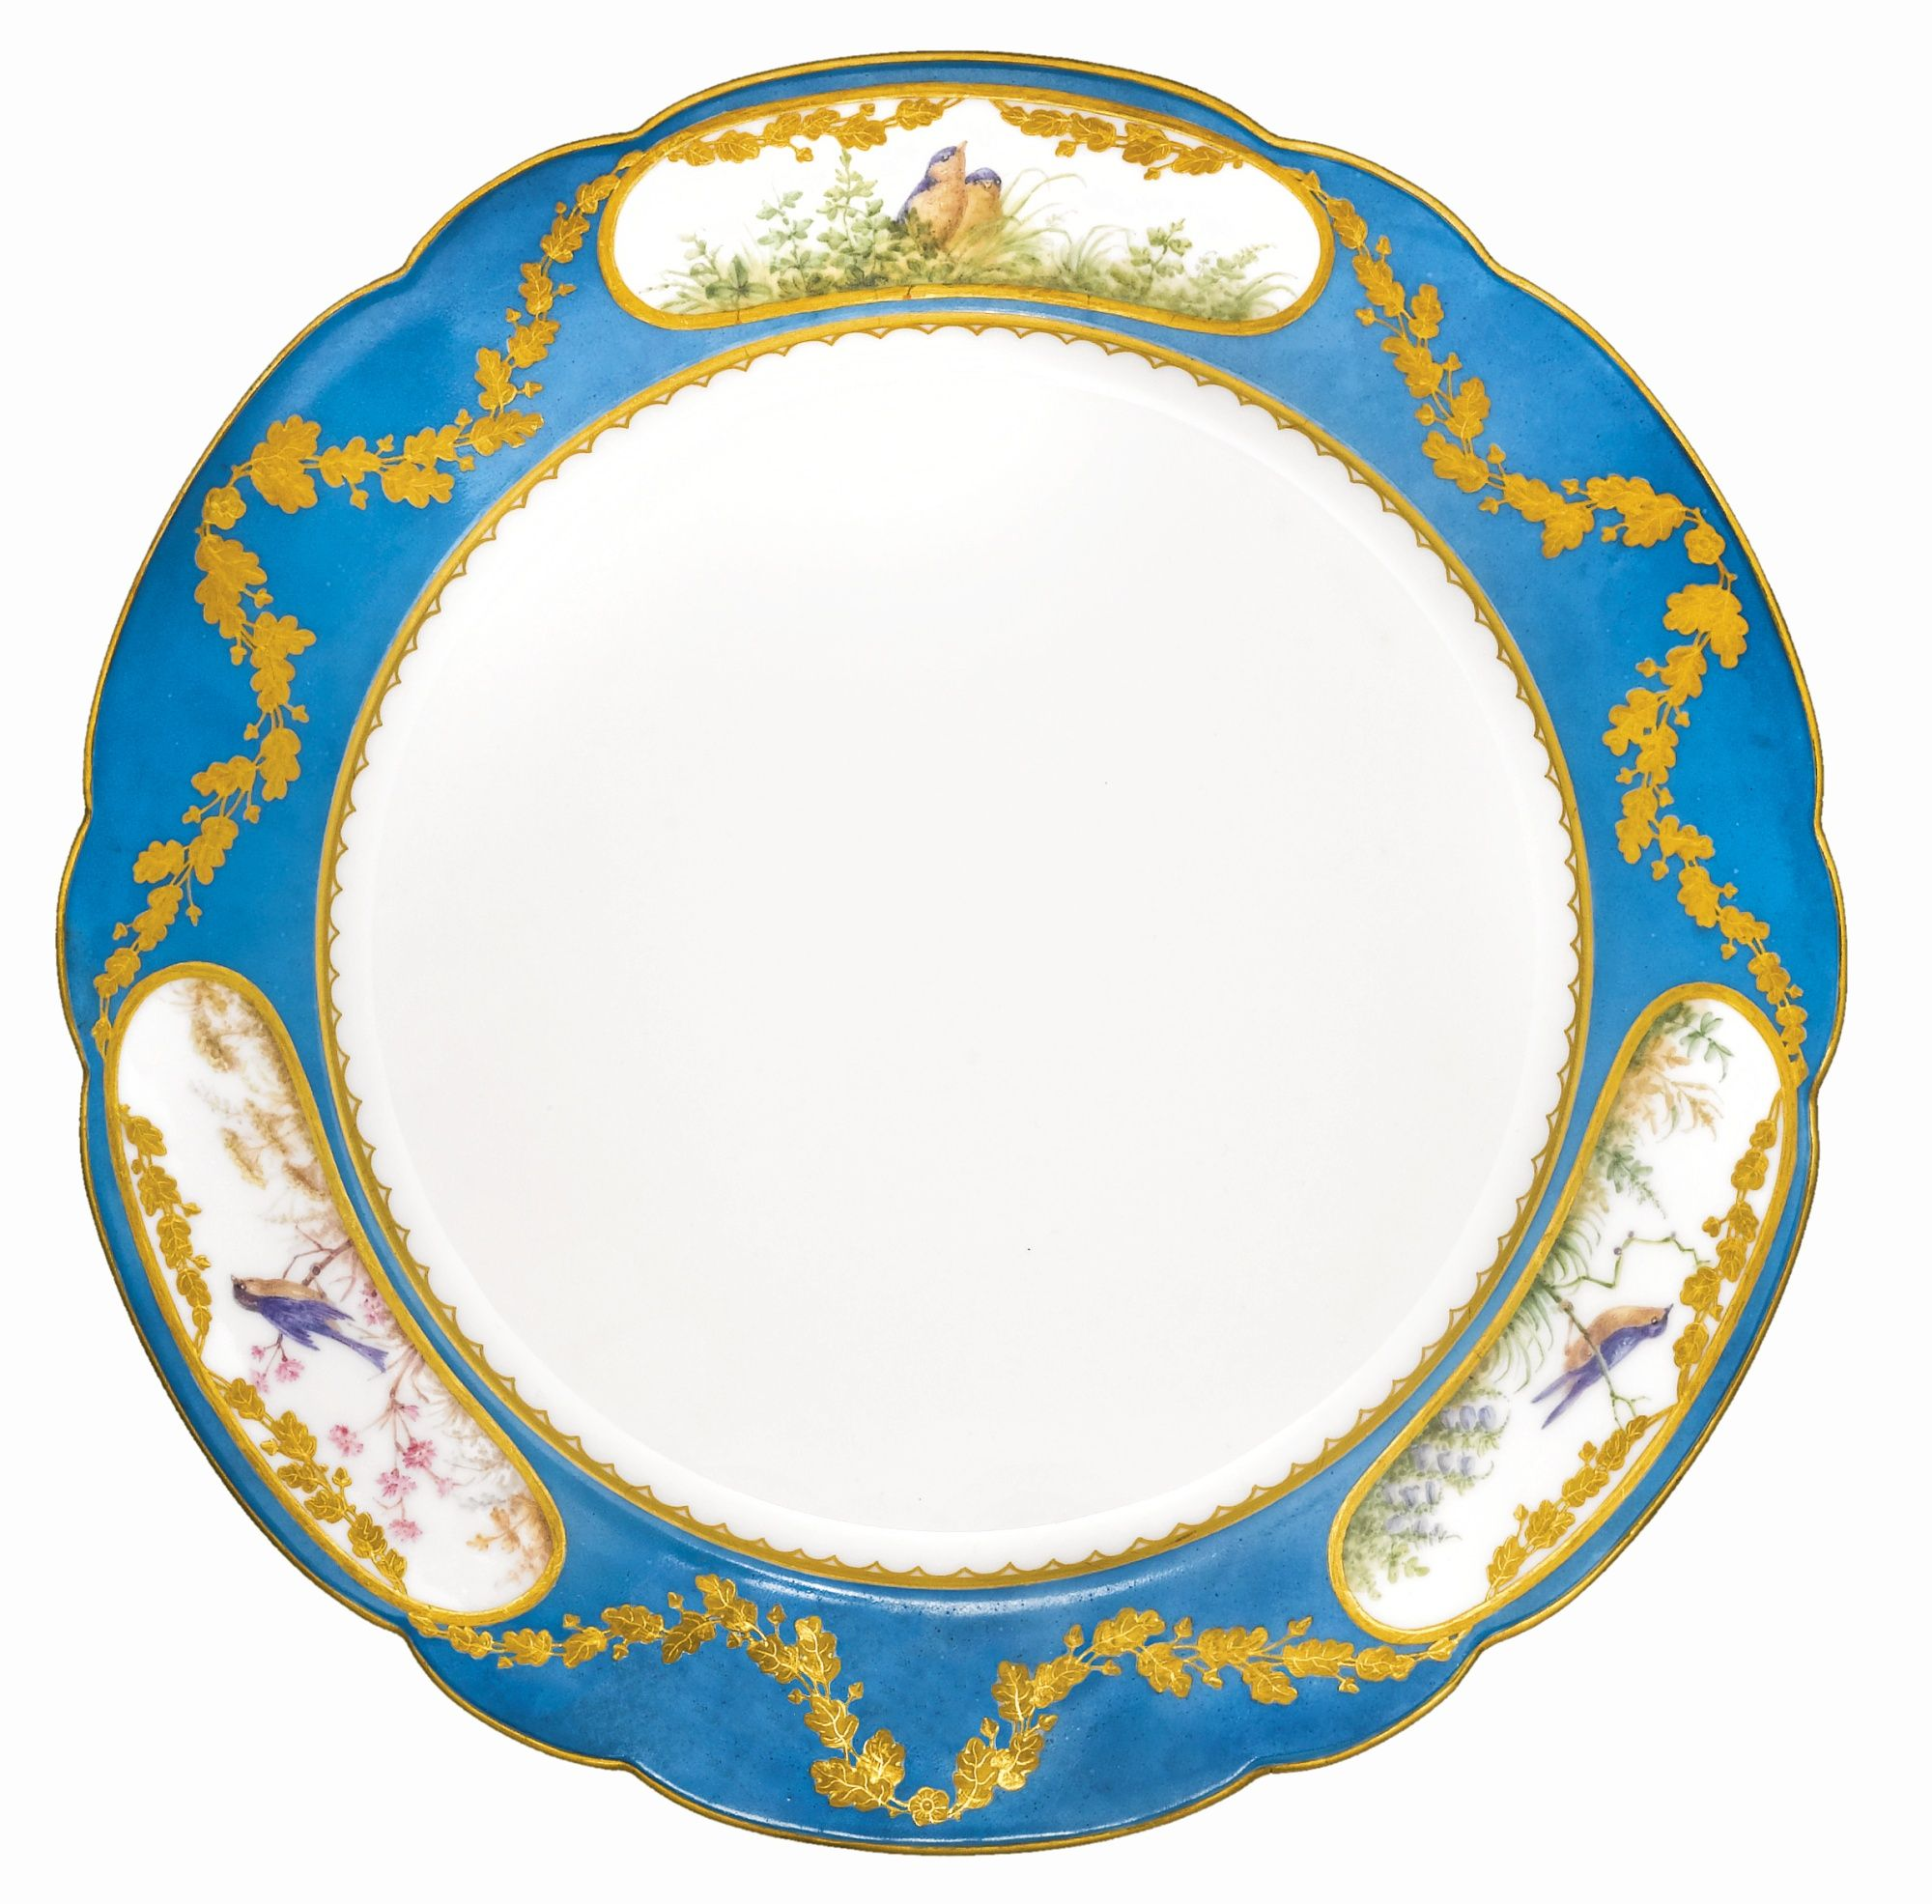 Two dinner plates from the Alexandrinsky Turquoise Service Imperial Porcelain Manufactory St Petersburg  sc 1 st  Pinterest & Two dinner plates from the Alexandrinsky Turquoise Service Imperial ...